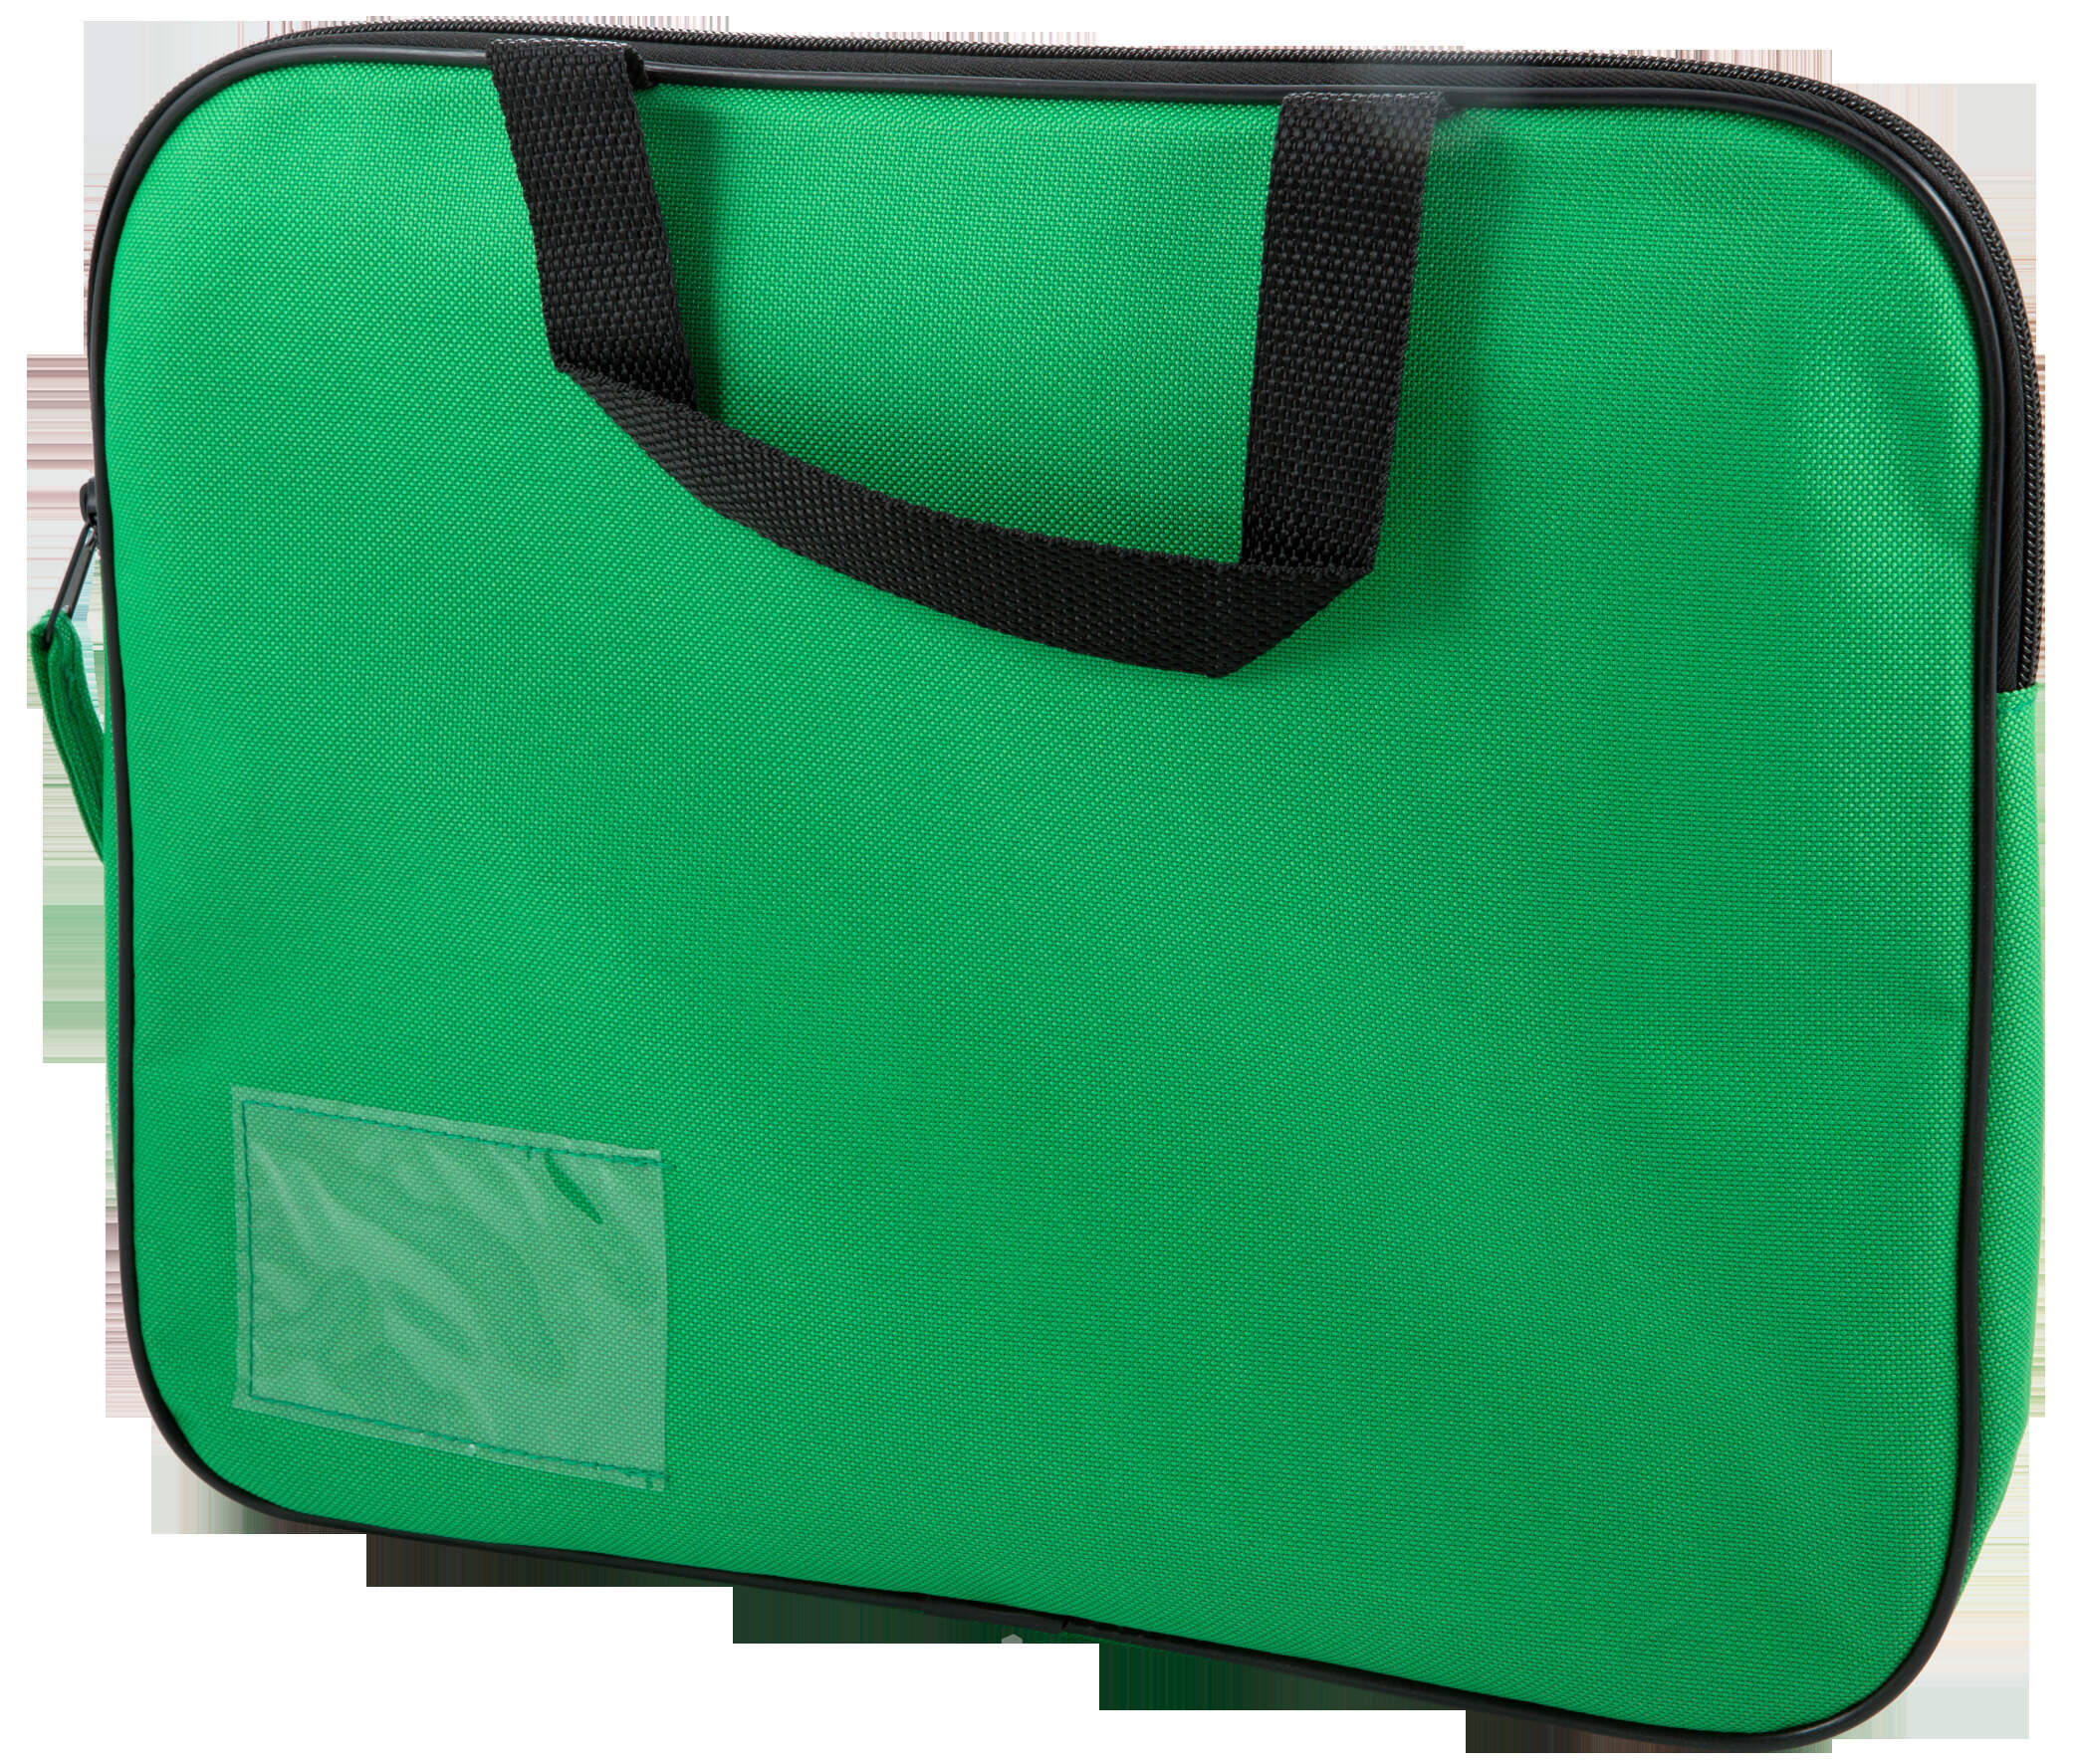 Homework Bag (Book Bag) With Handle - Green